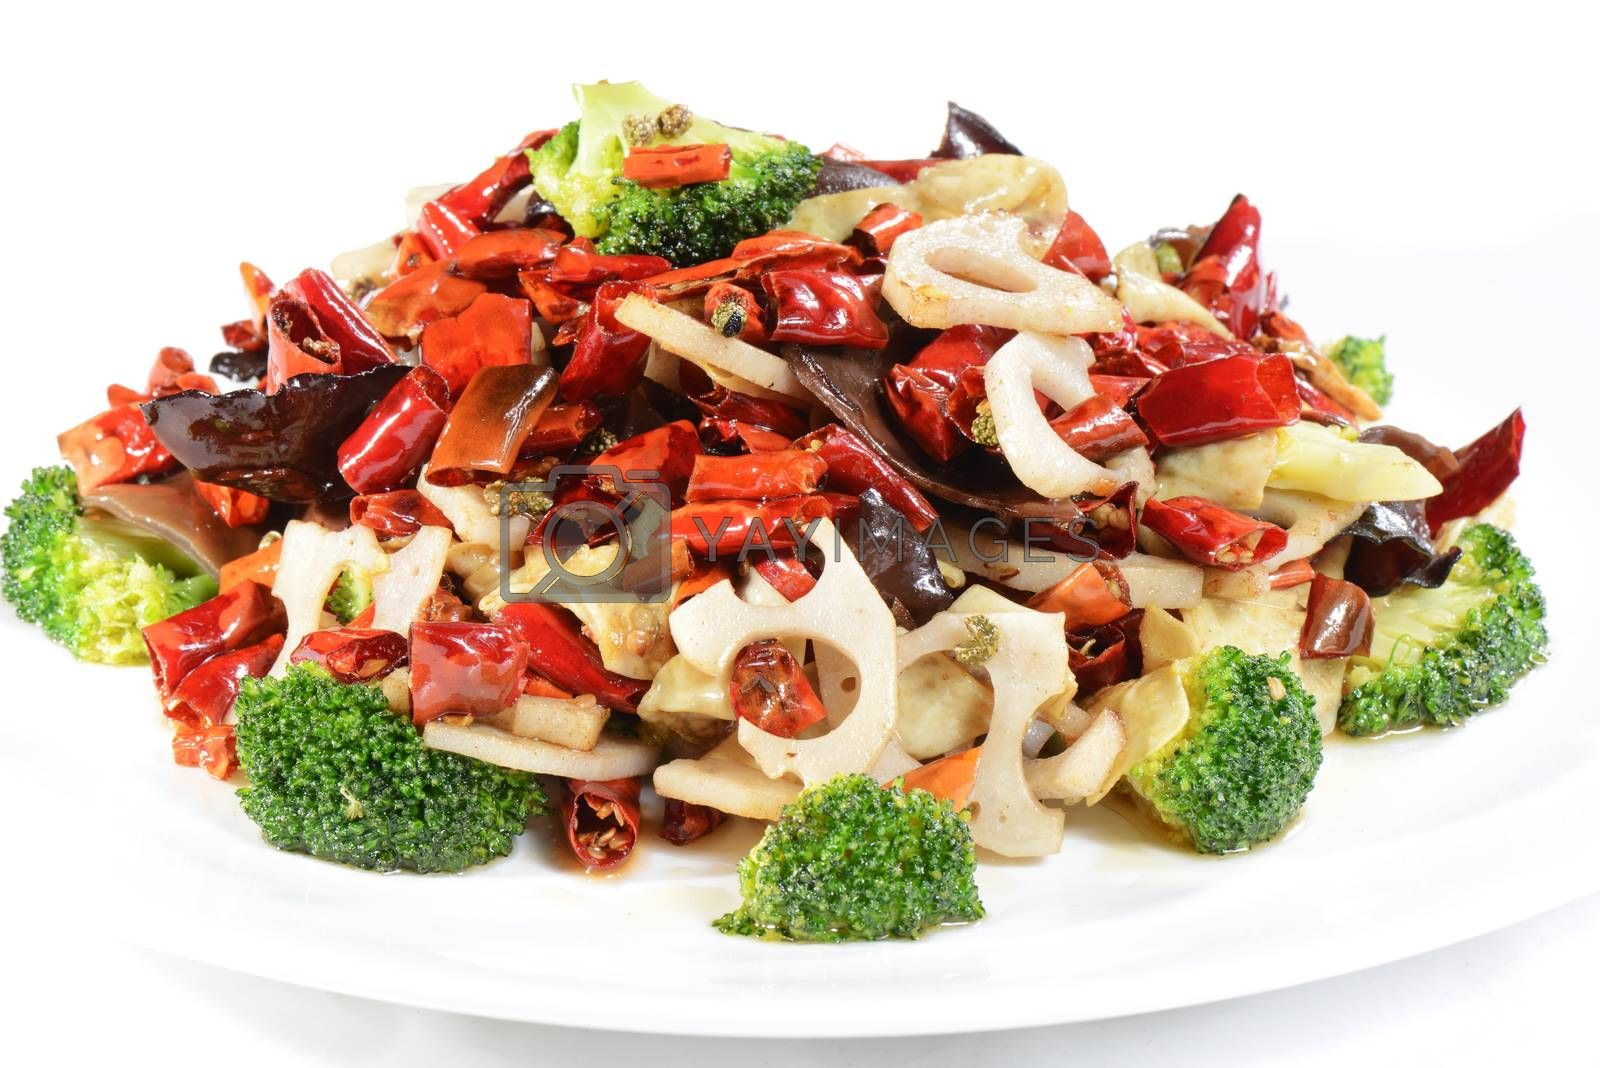 Royalty free image of Chinese Food: Fried vegetables with pepper by bbbar